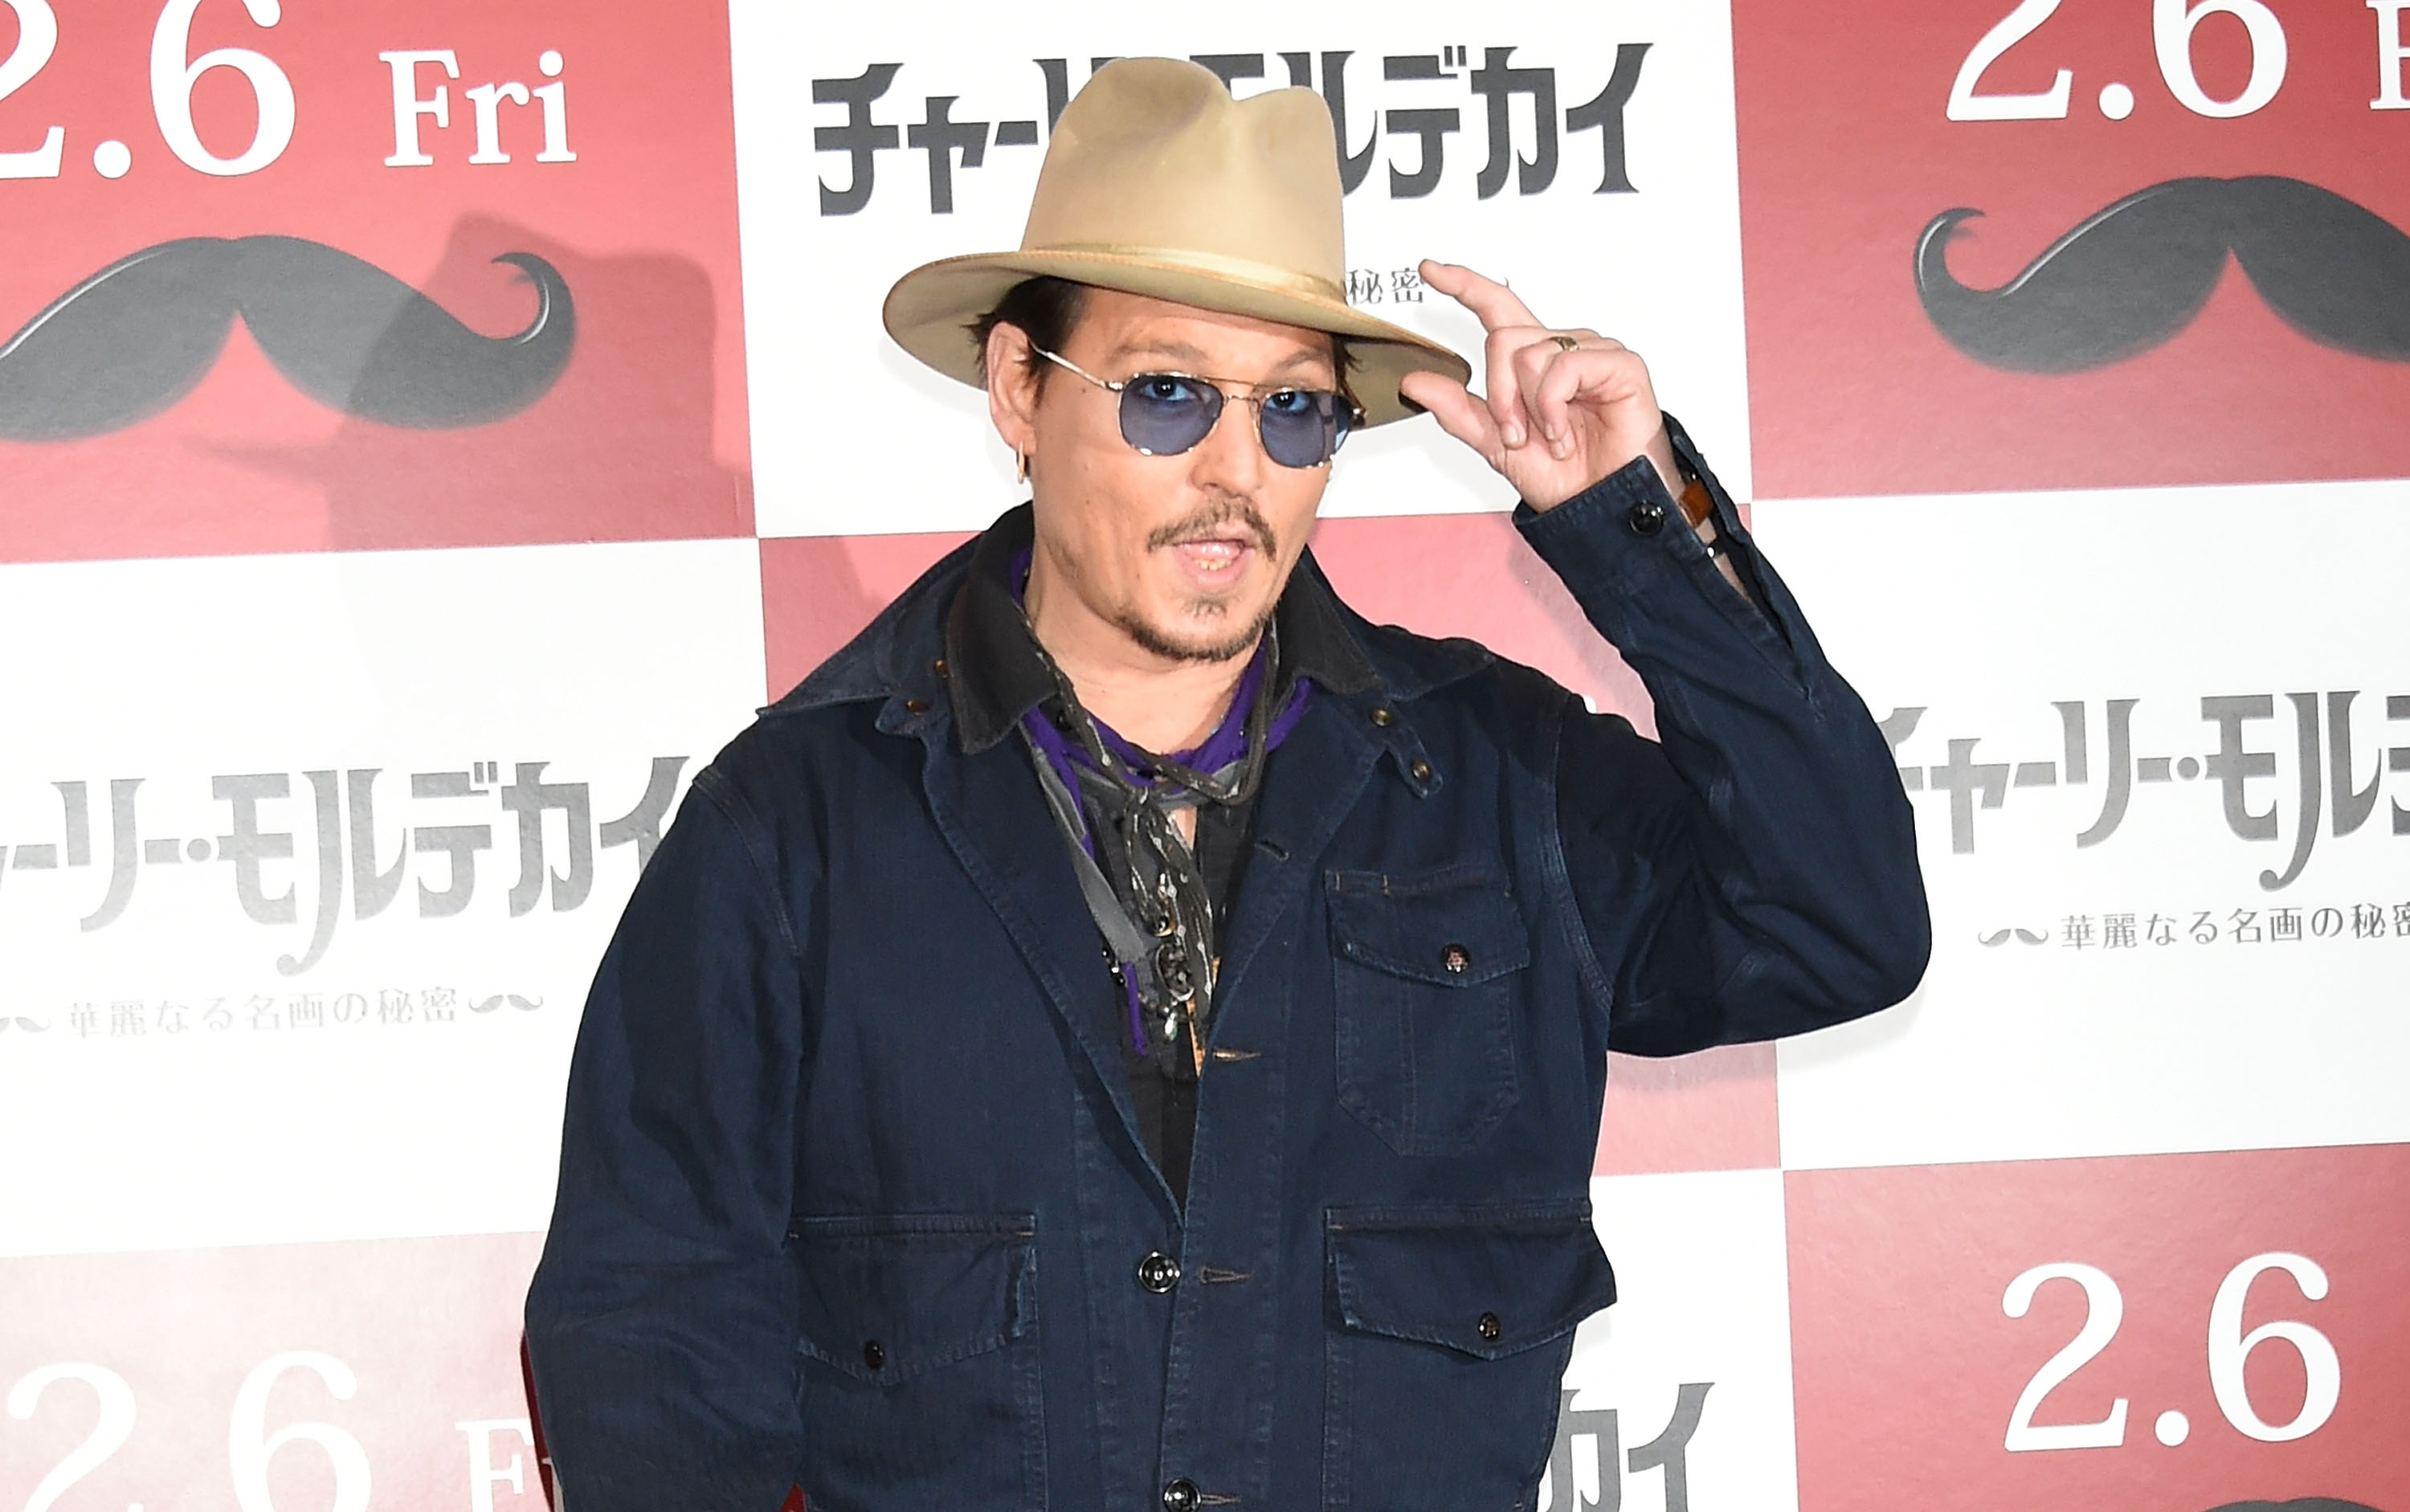 Johnny Depp attends the photo call for  Mortdecai  at The Peninsula Tokyo on January 28, 2015 in Tokyo, Japan.